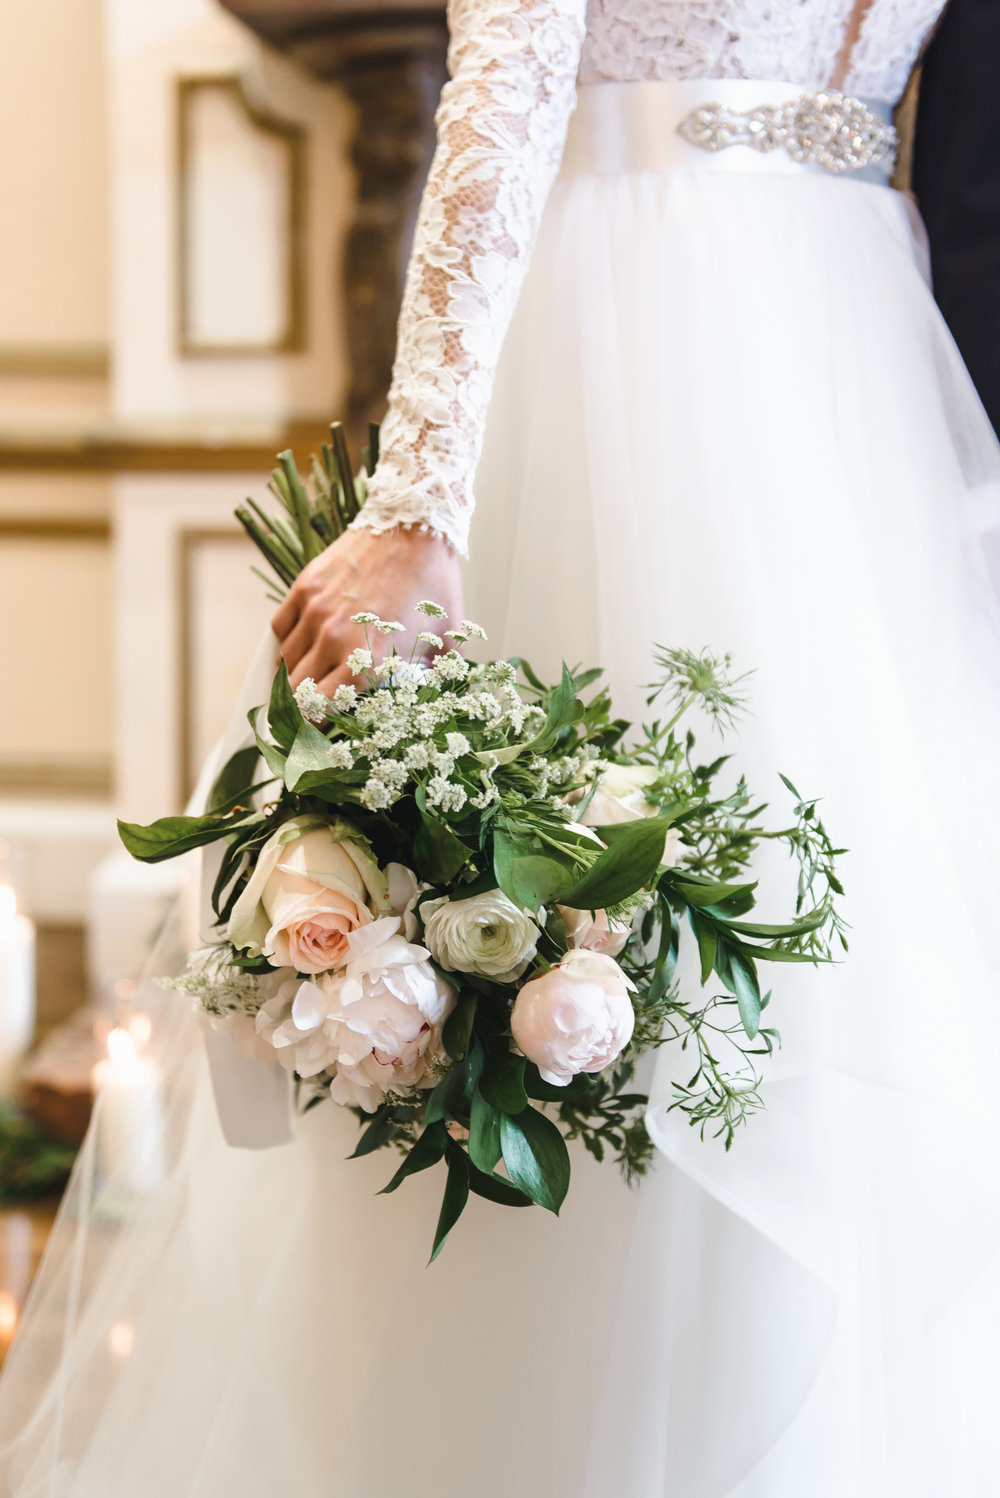 Romantic blush and cream bouquet with long sleeved dress #LRQCfloral.jpg